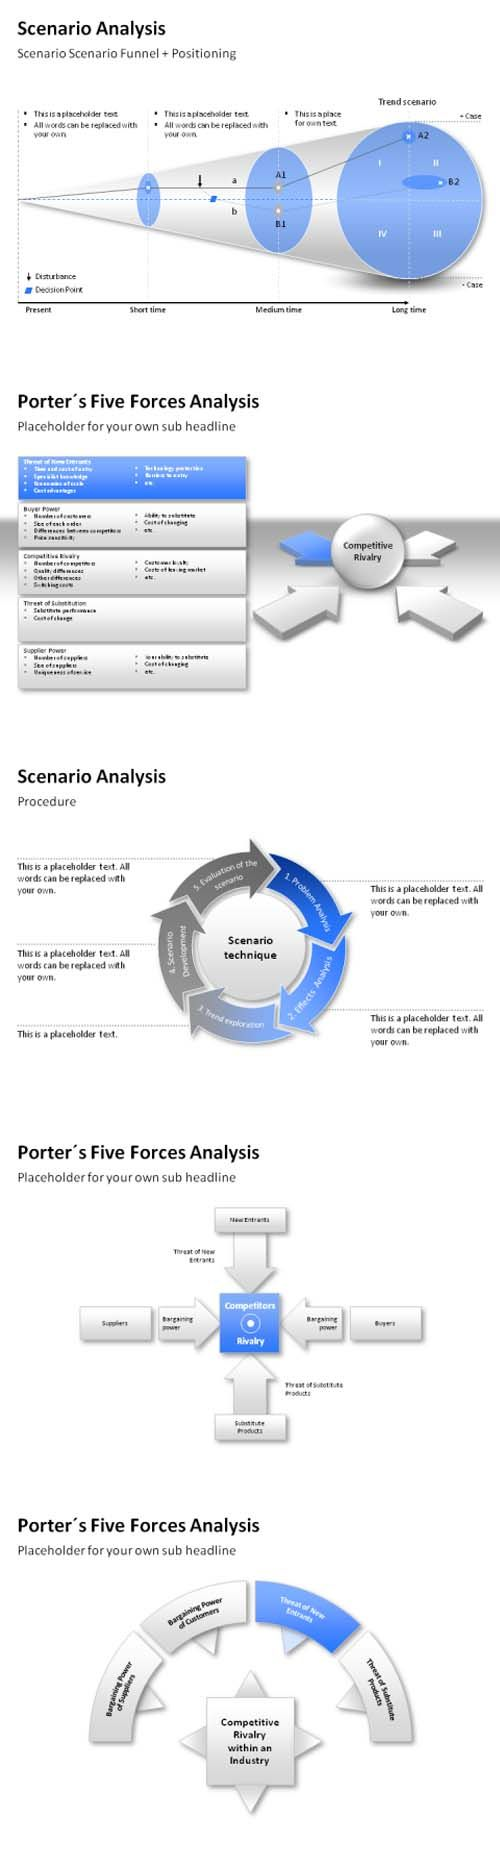 Business Analysis PowerPoint Templates #powerpoint #business